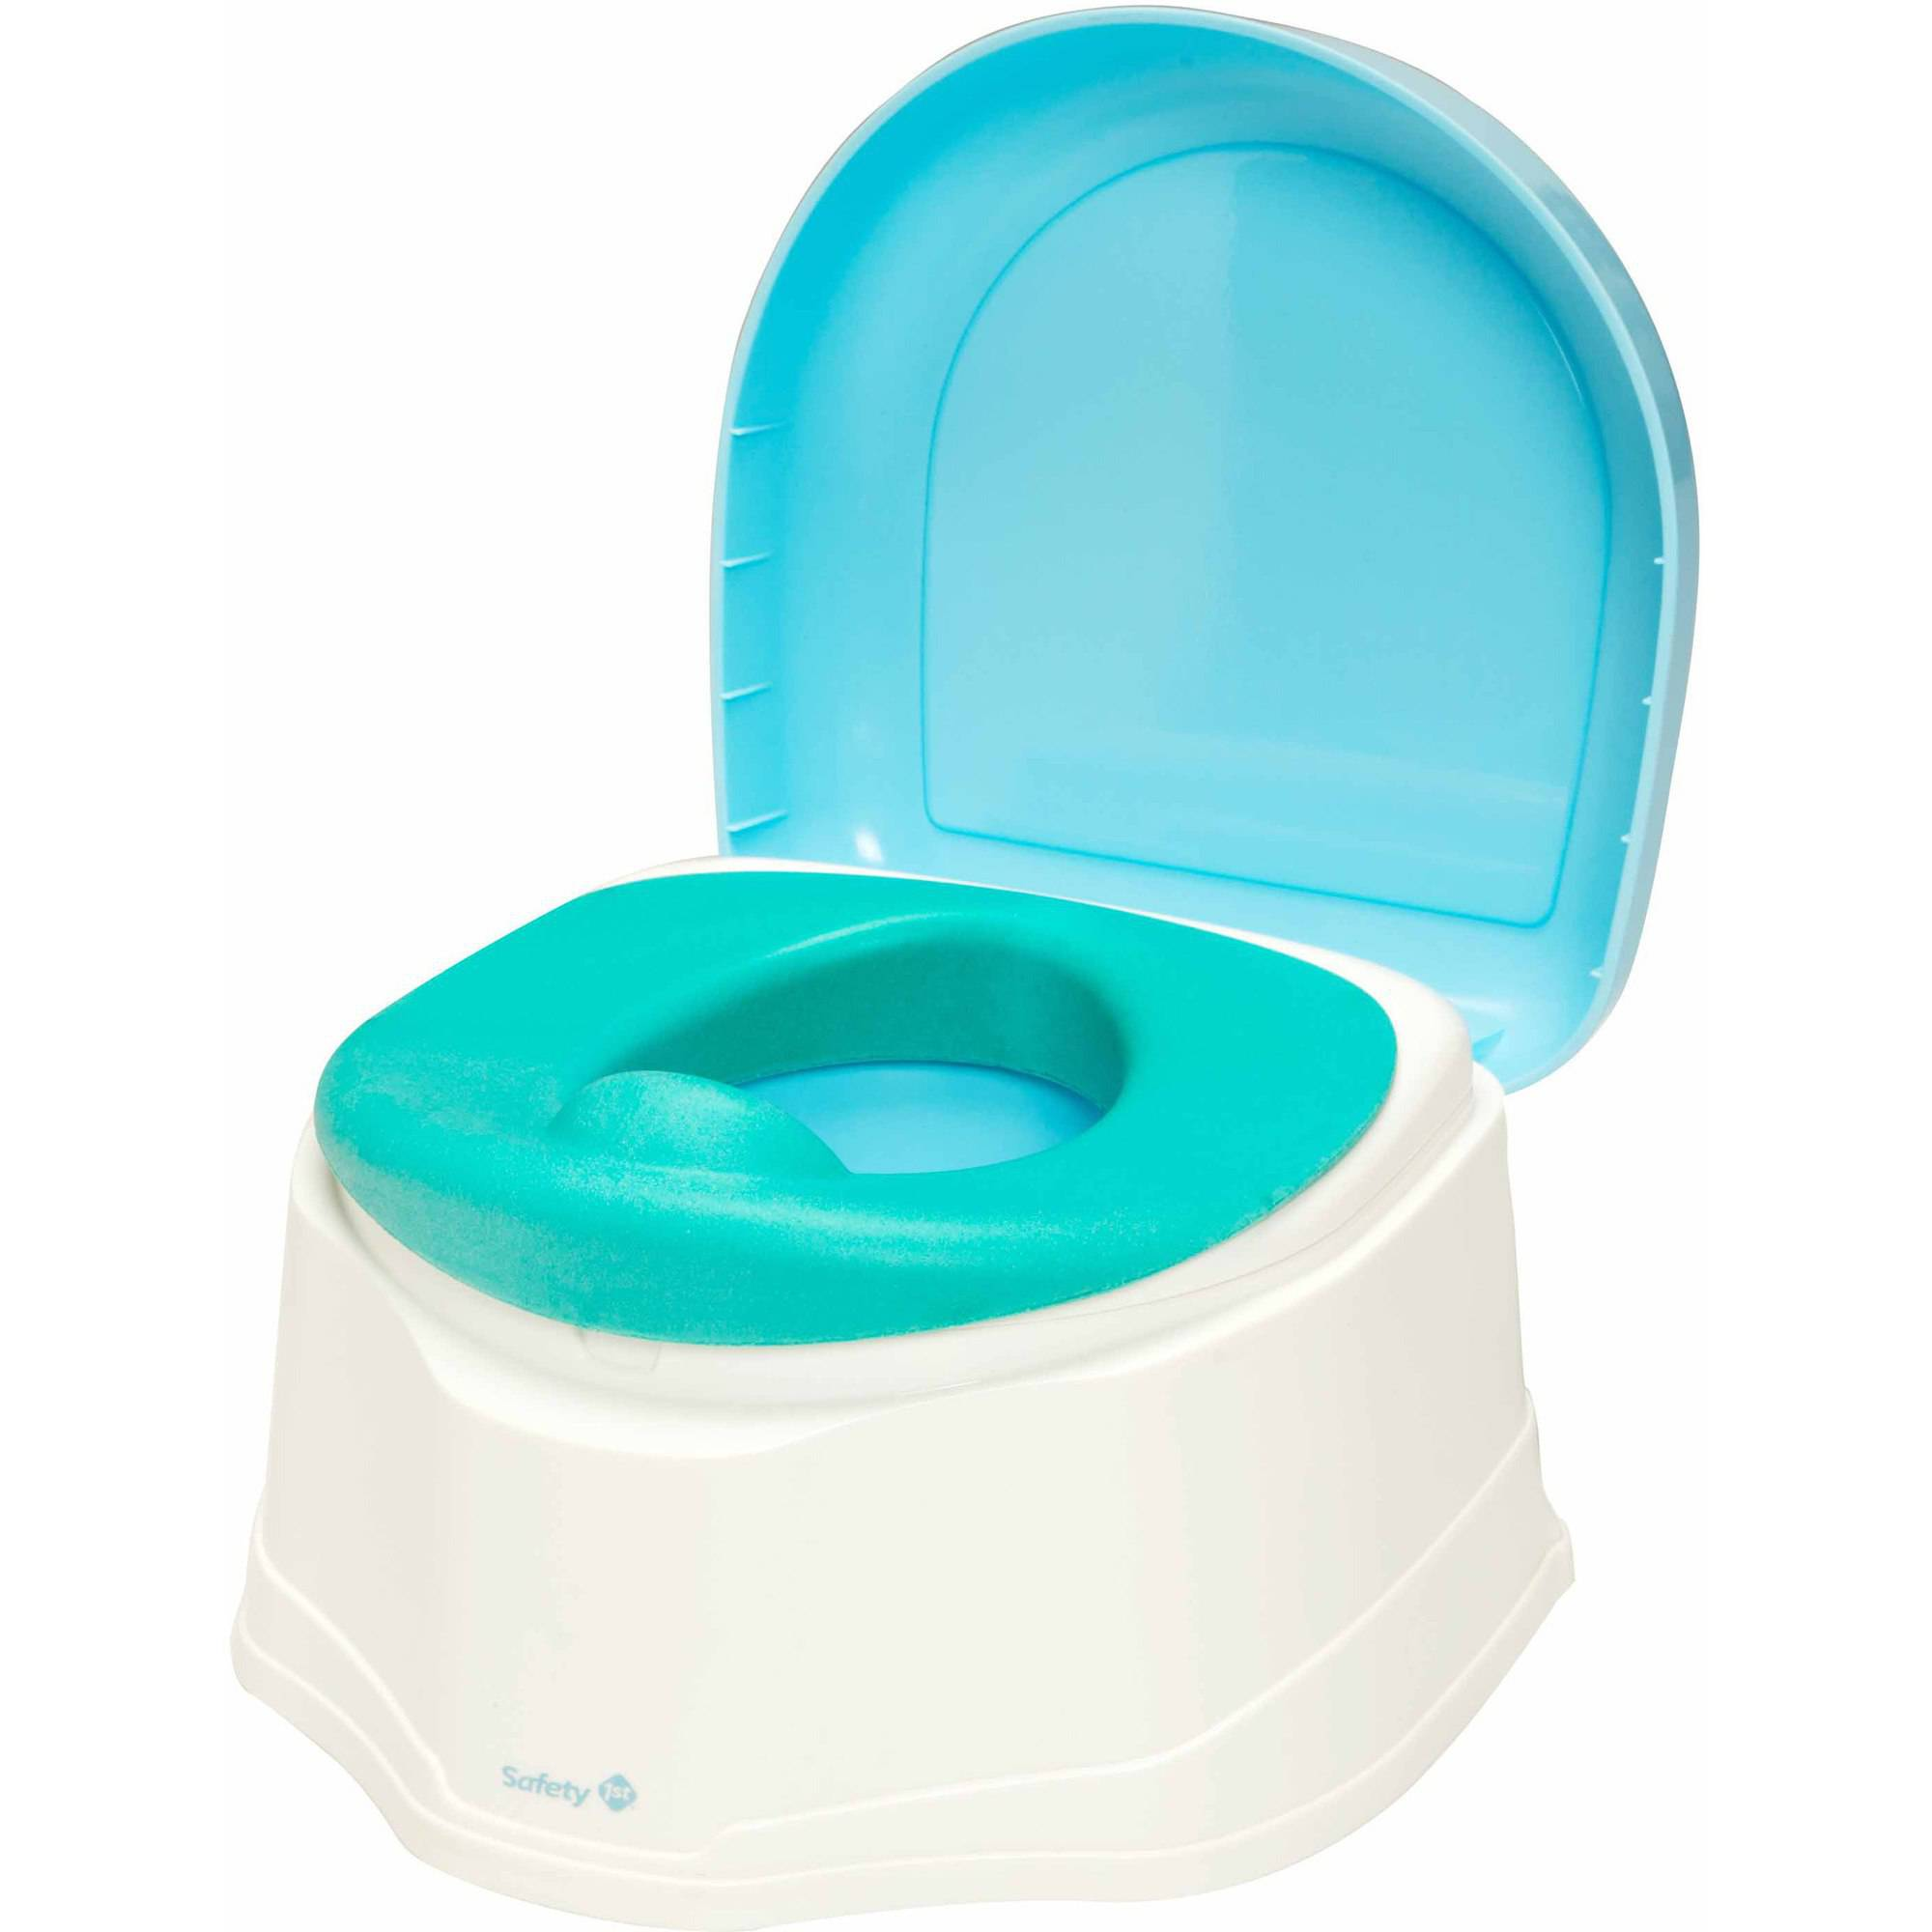 Safety 1st 3-in-1 Clean Comfort Toilet Trainer, White Aqua by Safety 1st